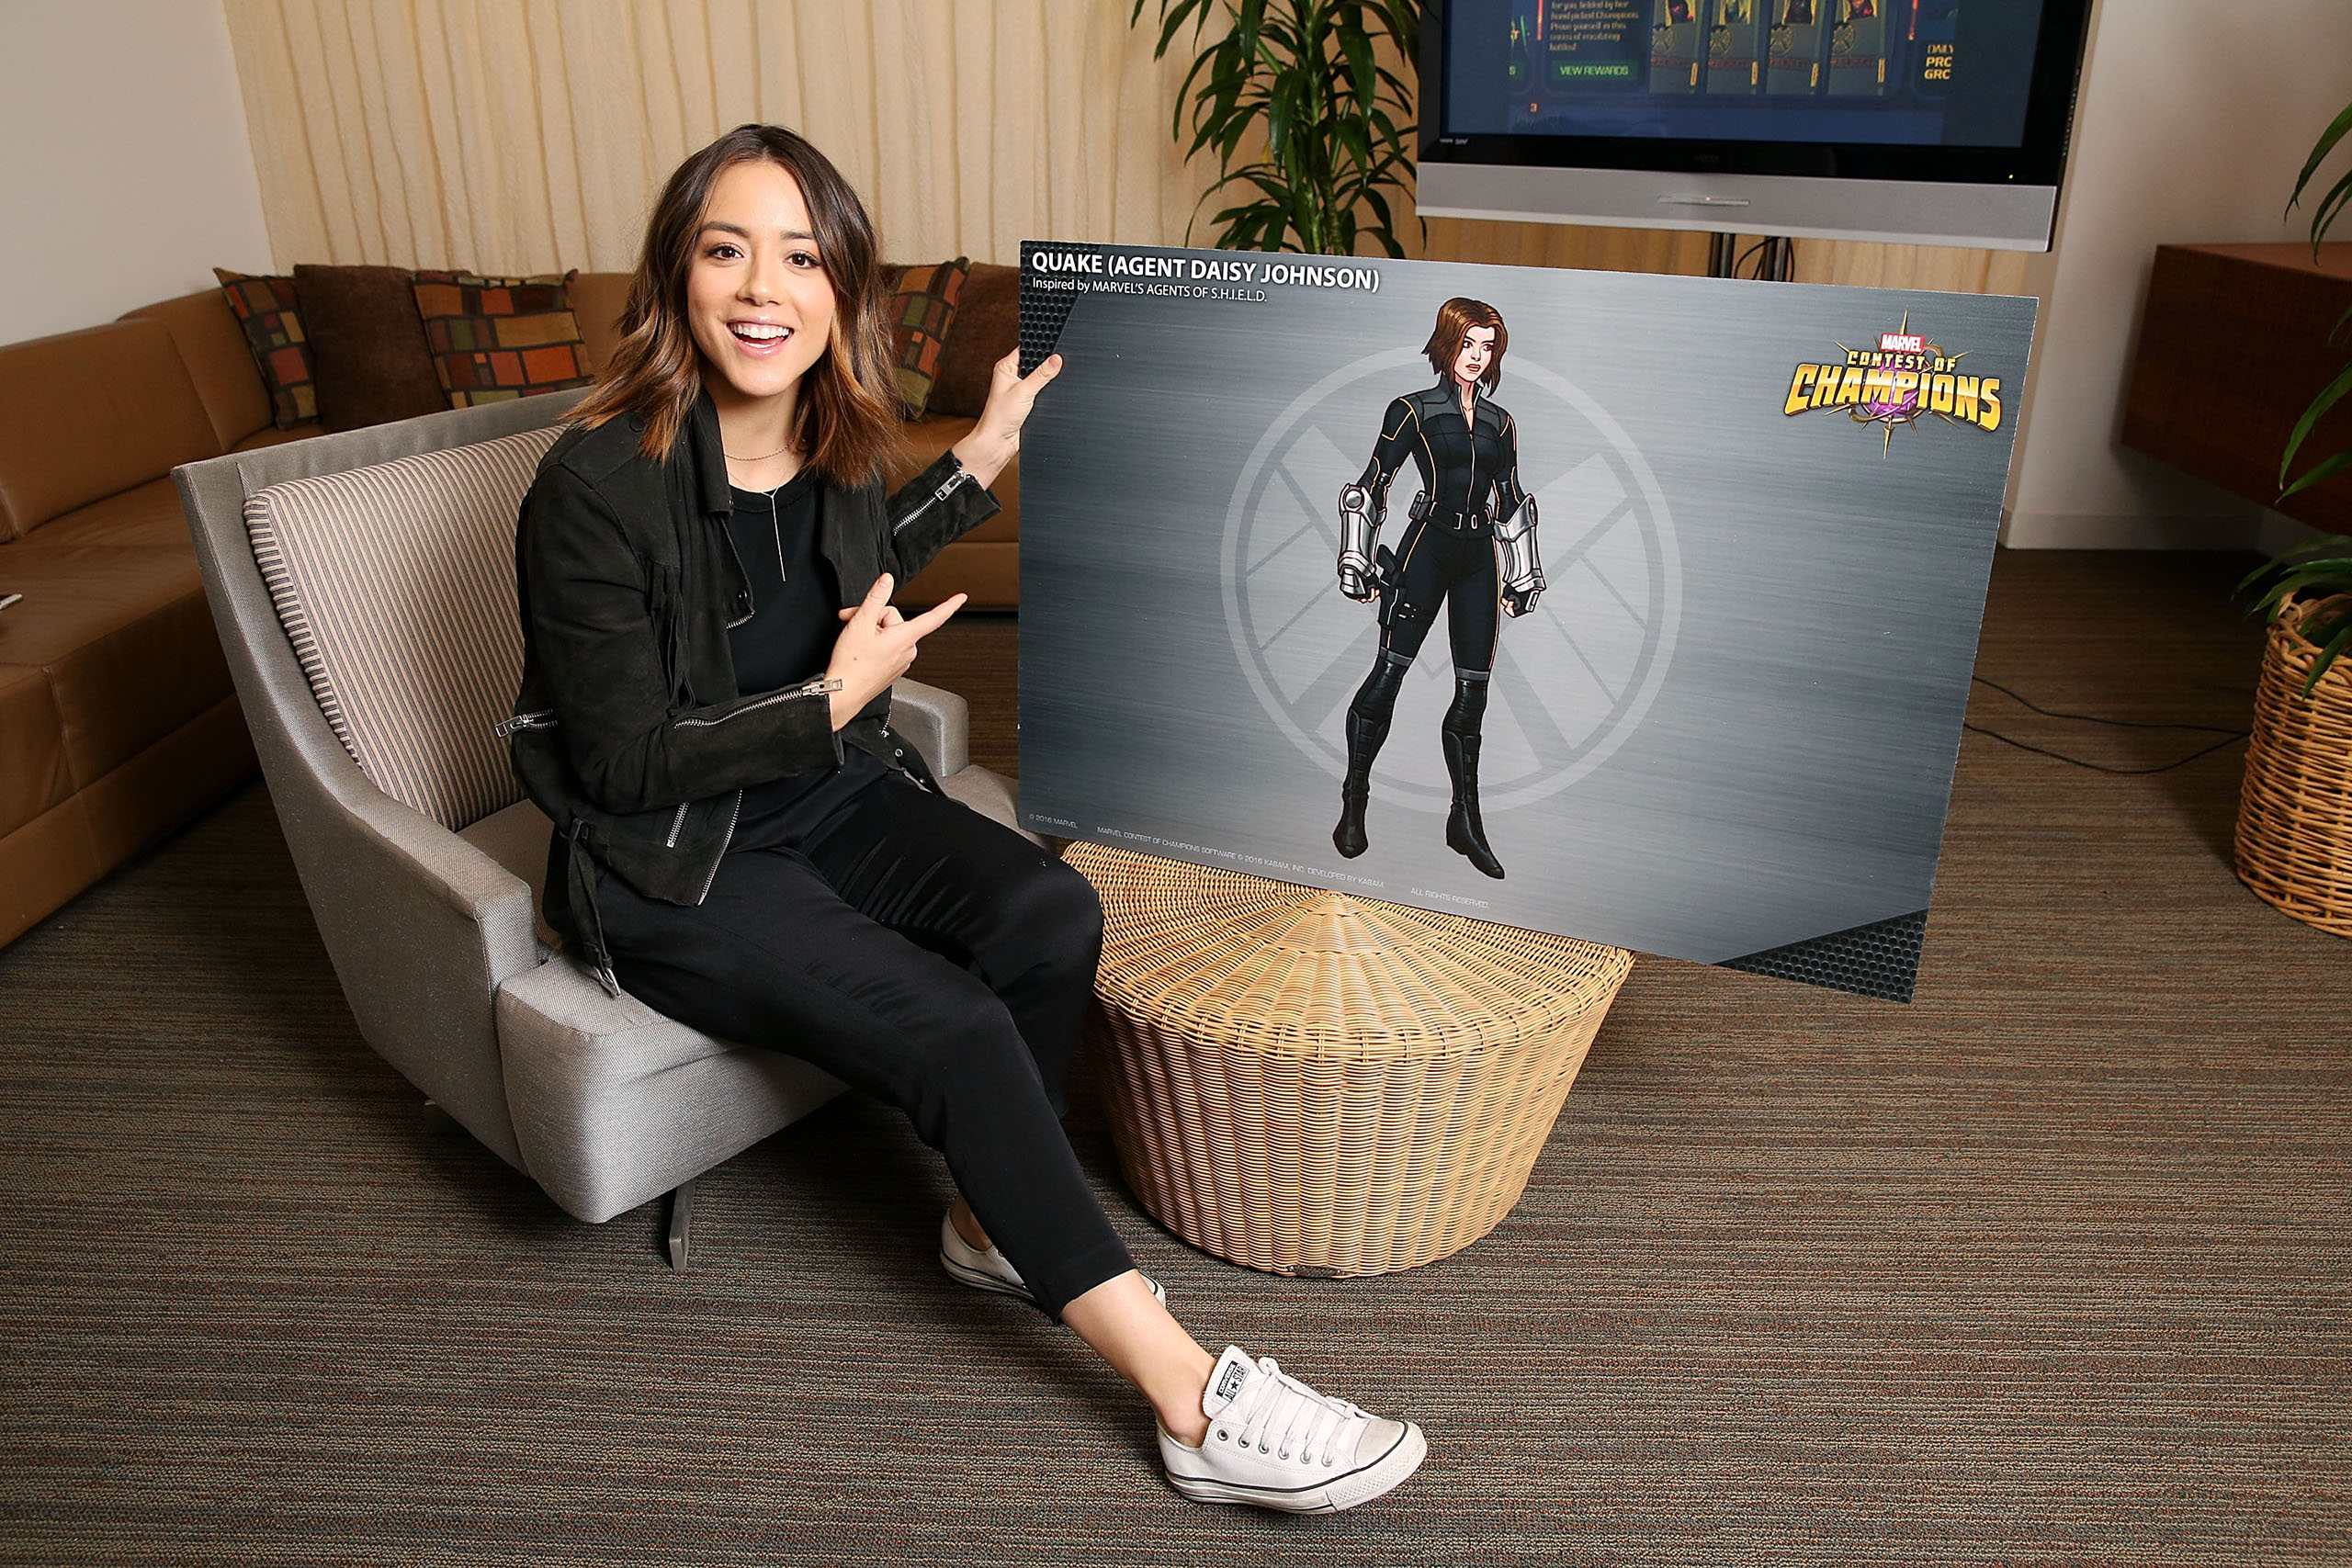 From Chloe Wang (汪可盈) to Chloe Bennet - who is the real Chloe? - Alvinology